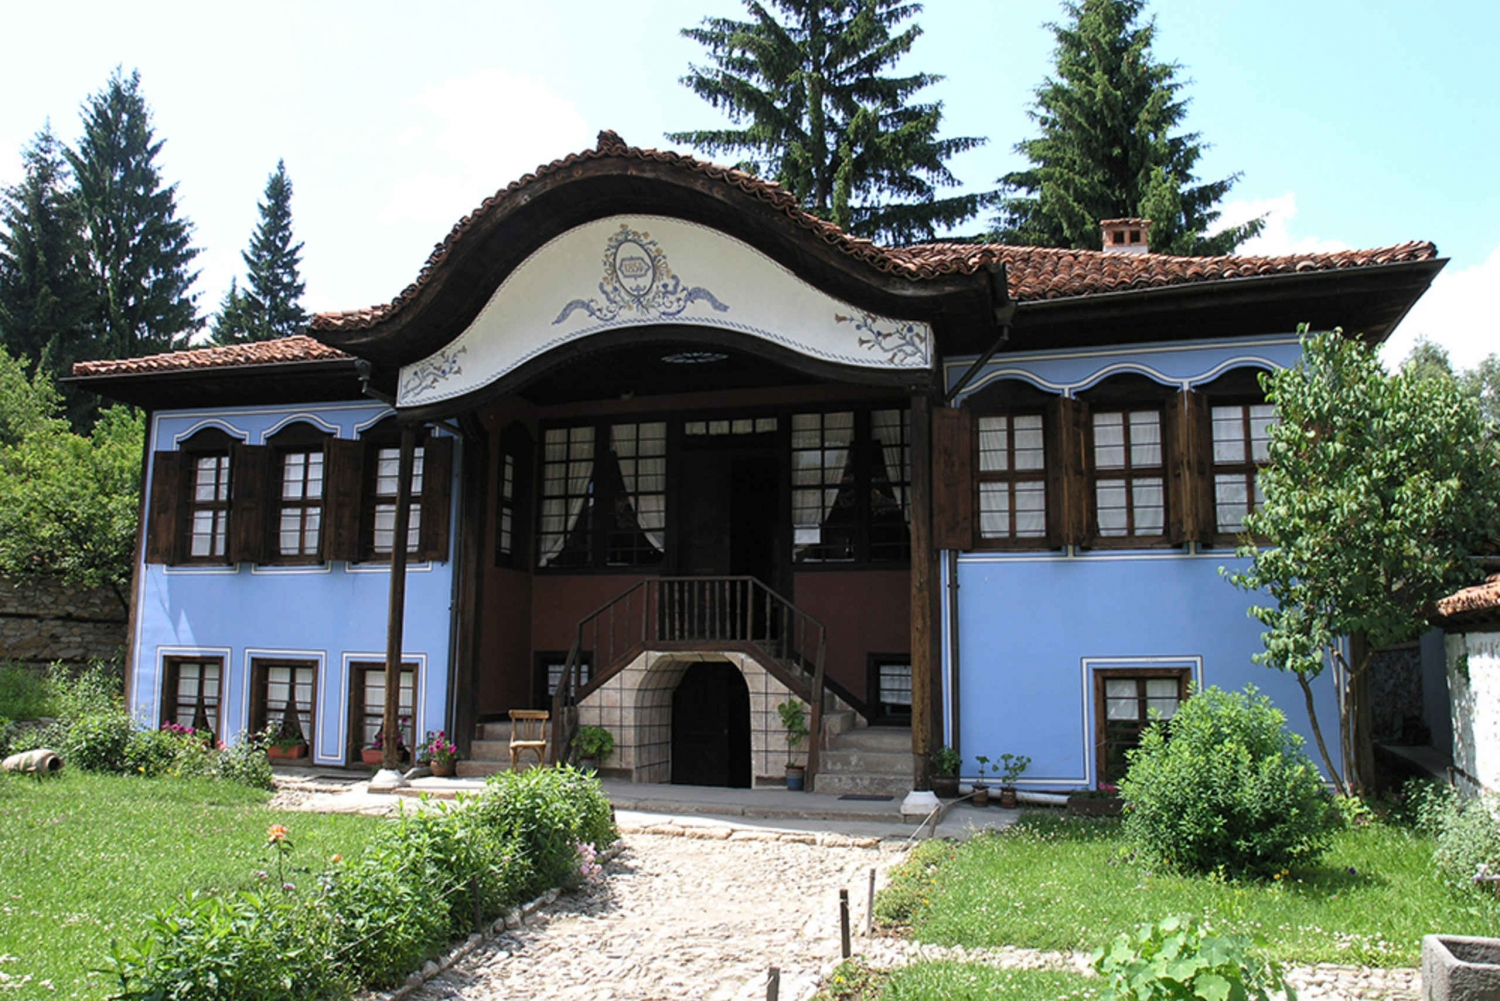 Full-Day Koprivshtitsa Tour from Sofia